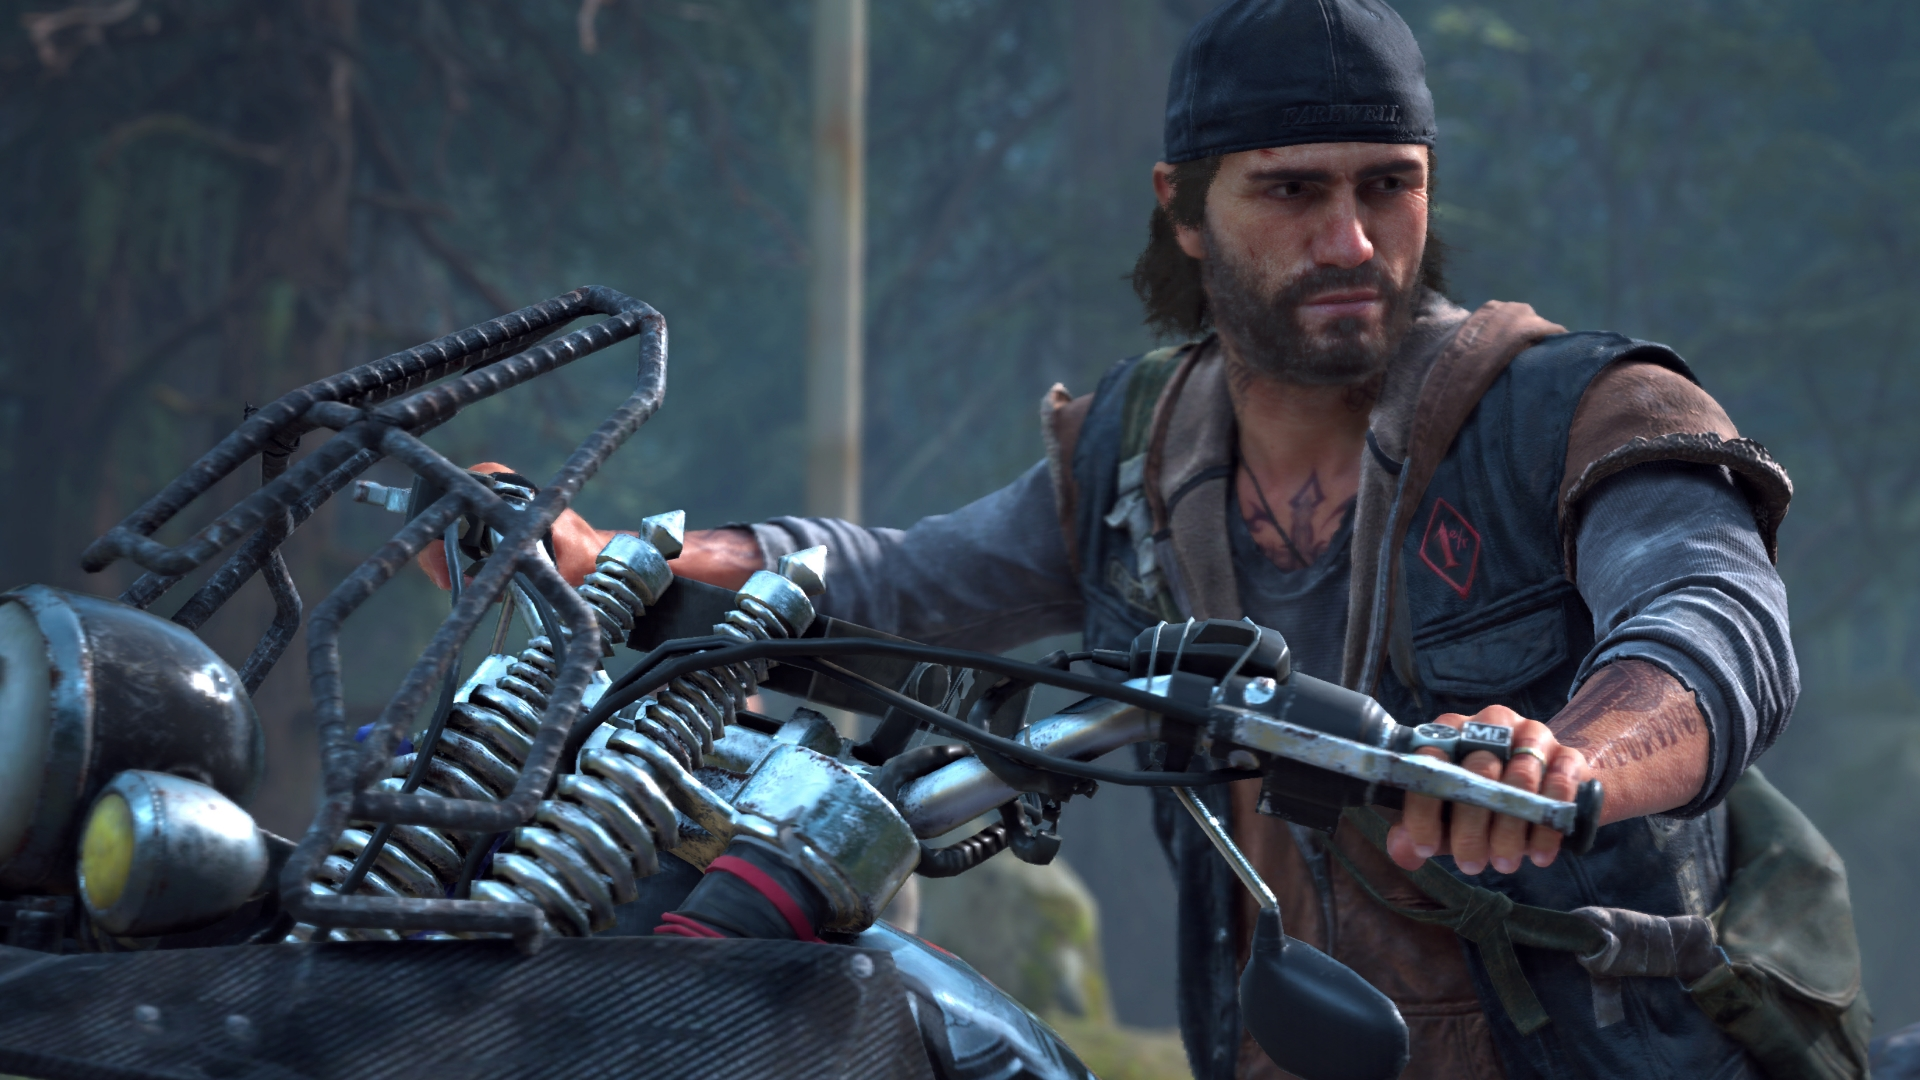 """Days Gone writer says we shouldn't """"complain if a game doesn't get a sequel"""" if we didn't pay full price for it thumbnail"""